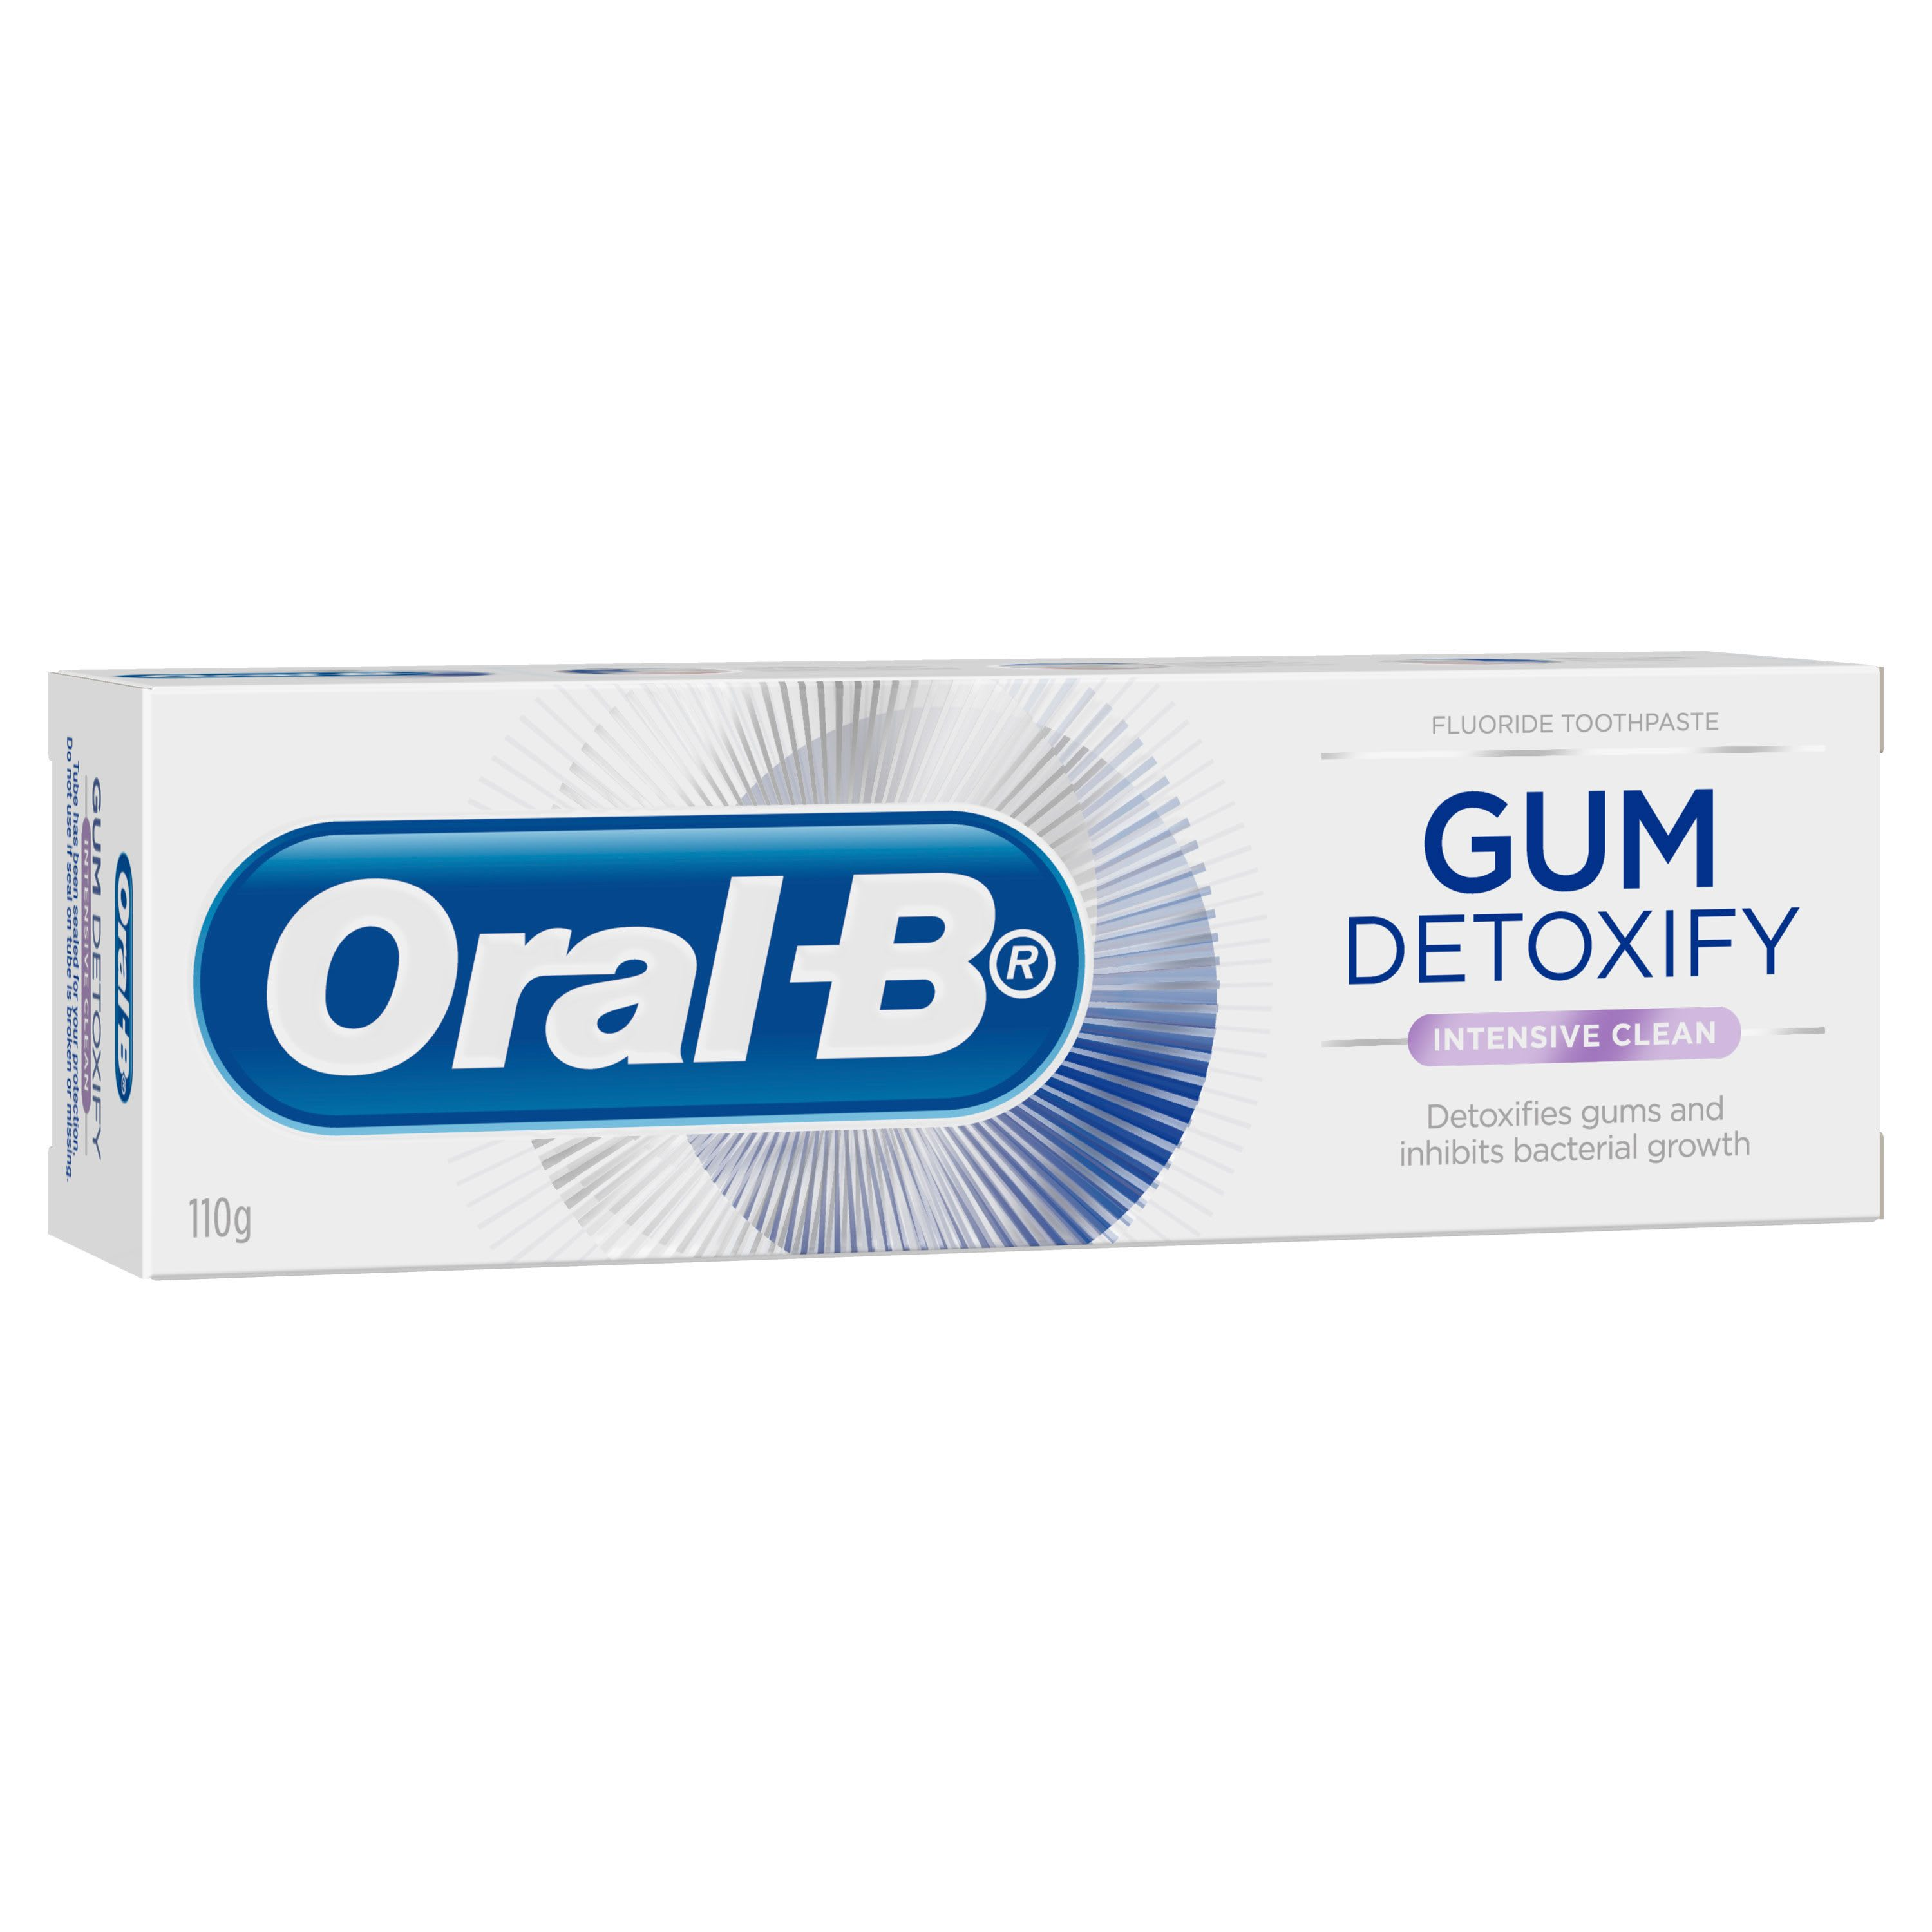 Gum Detoxify Intensive Clean Toothpaste